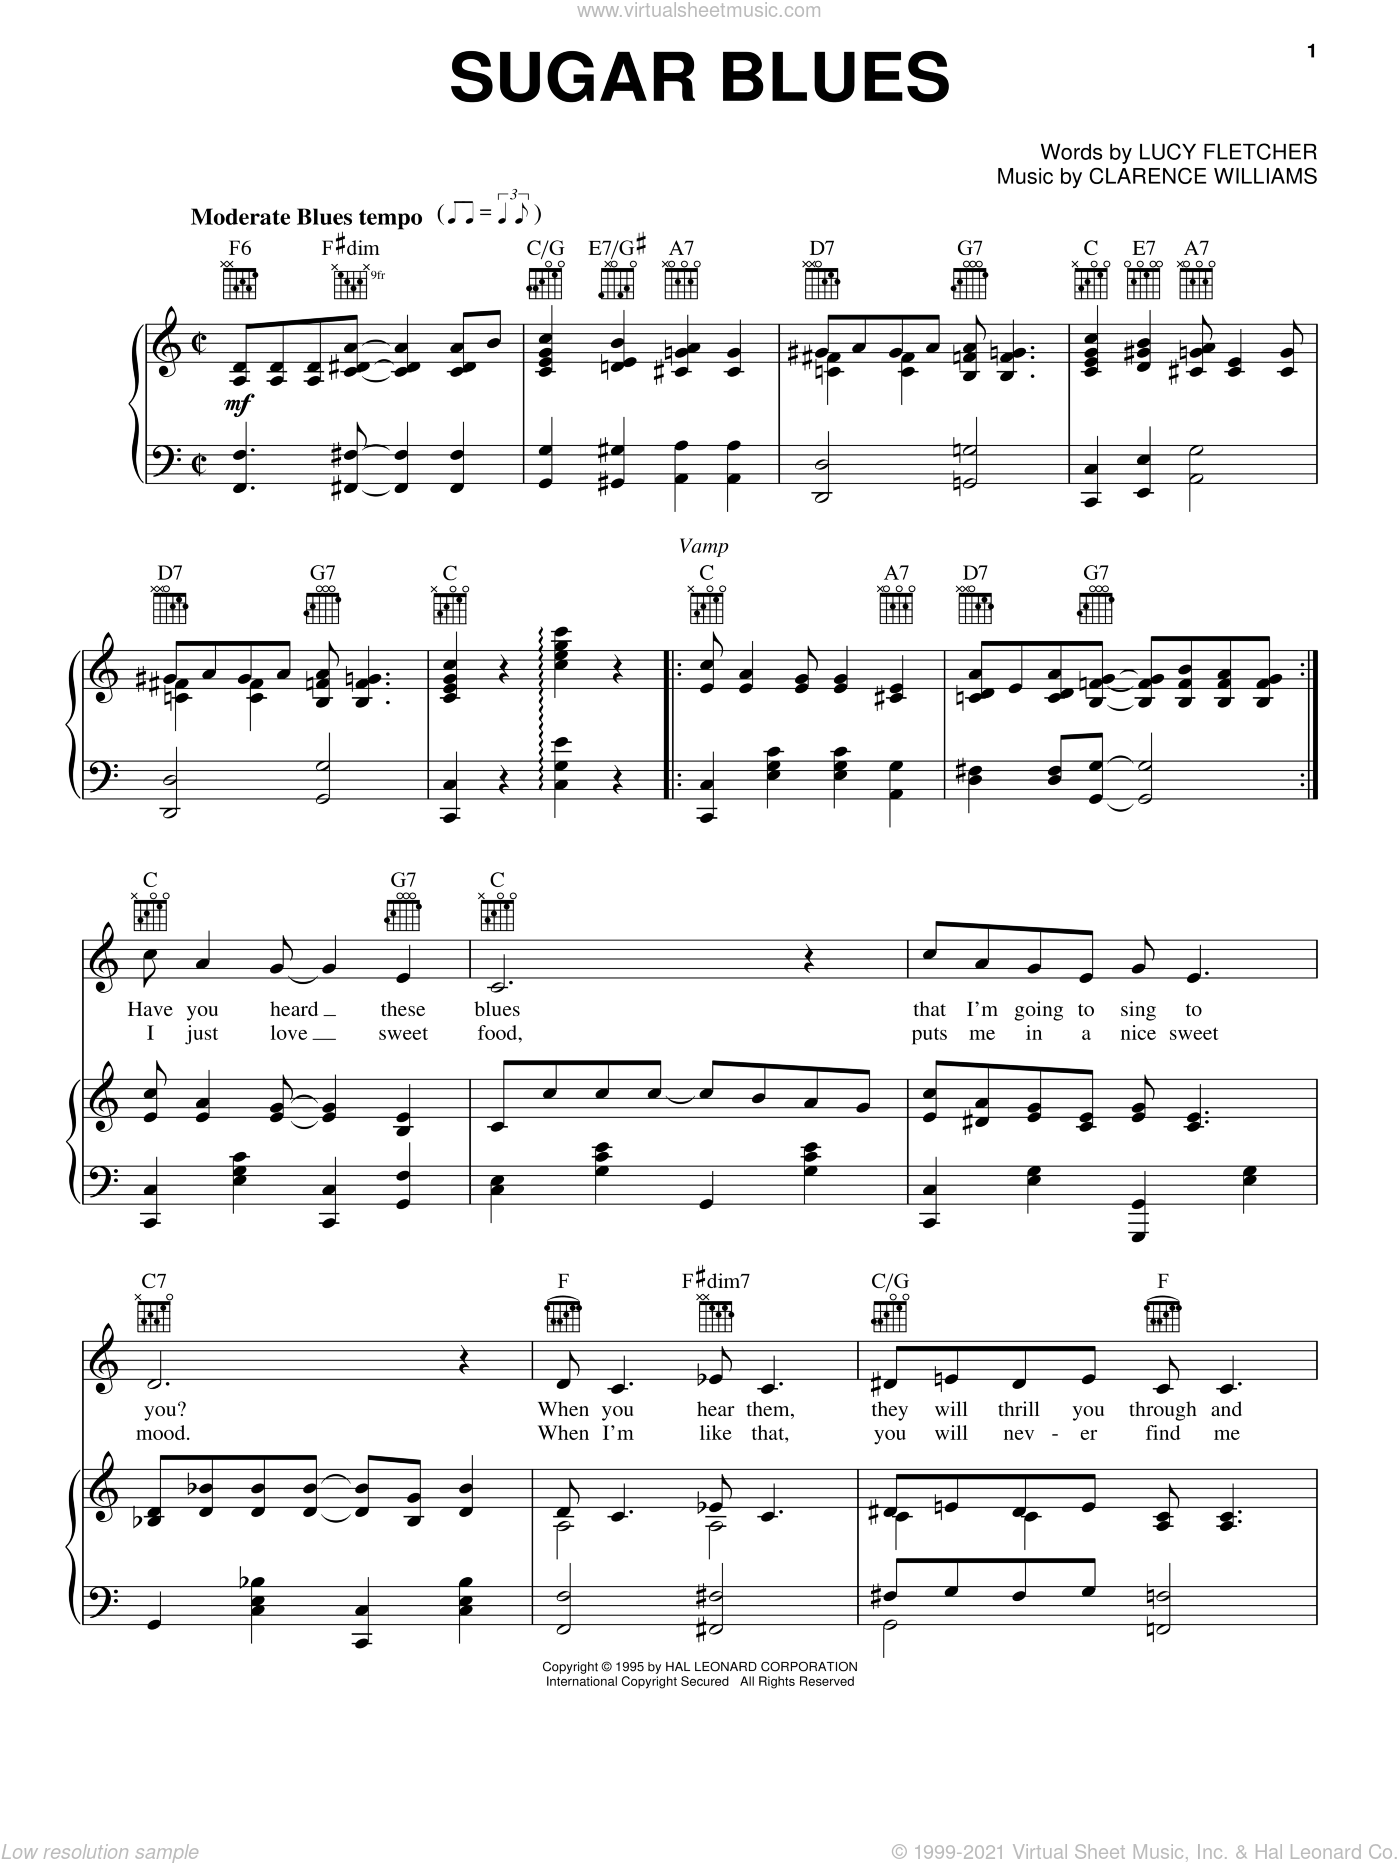 Sugar Blues sheet music for voice, piano or guitar by Clyde McCoy and his Orchestra, Clarence Williams and Lucy Fletcher, intermediate skill level